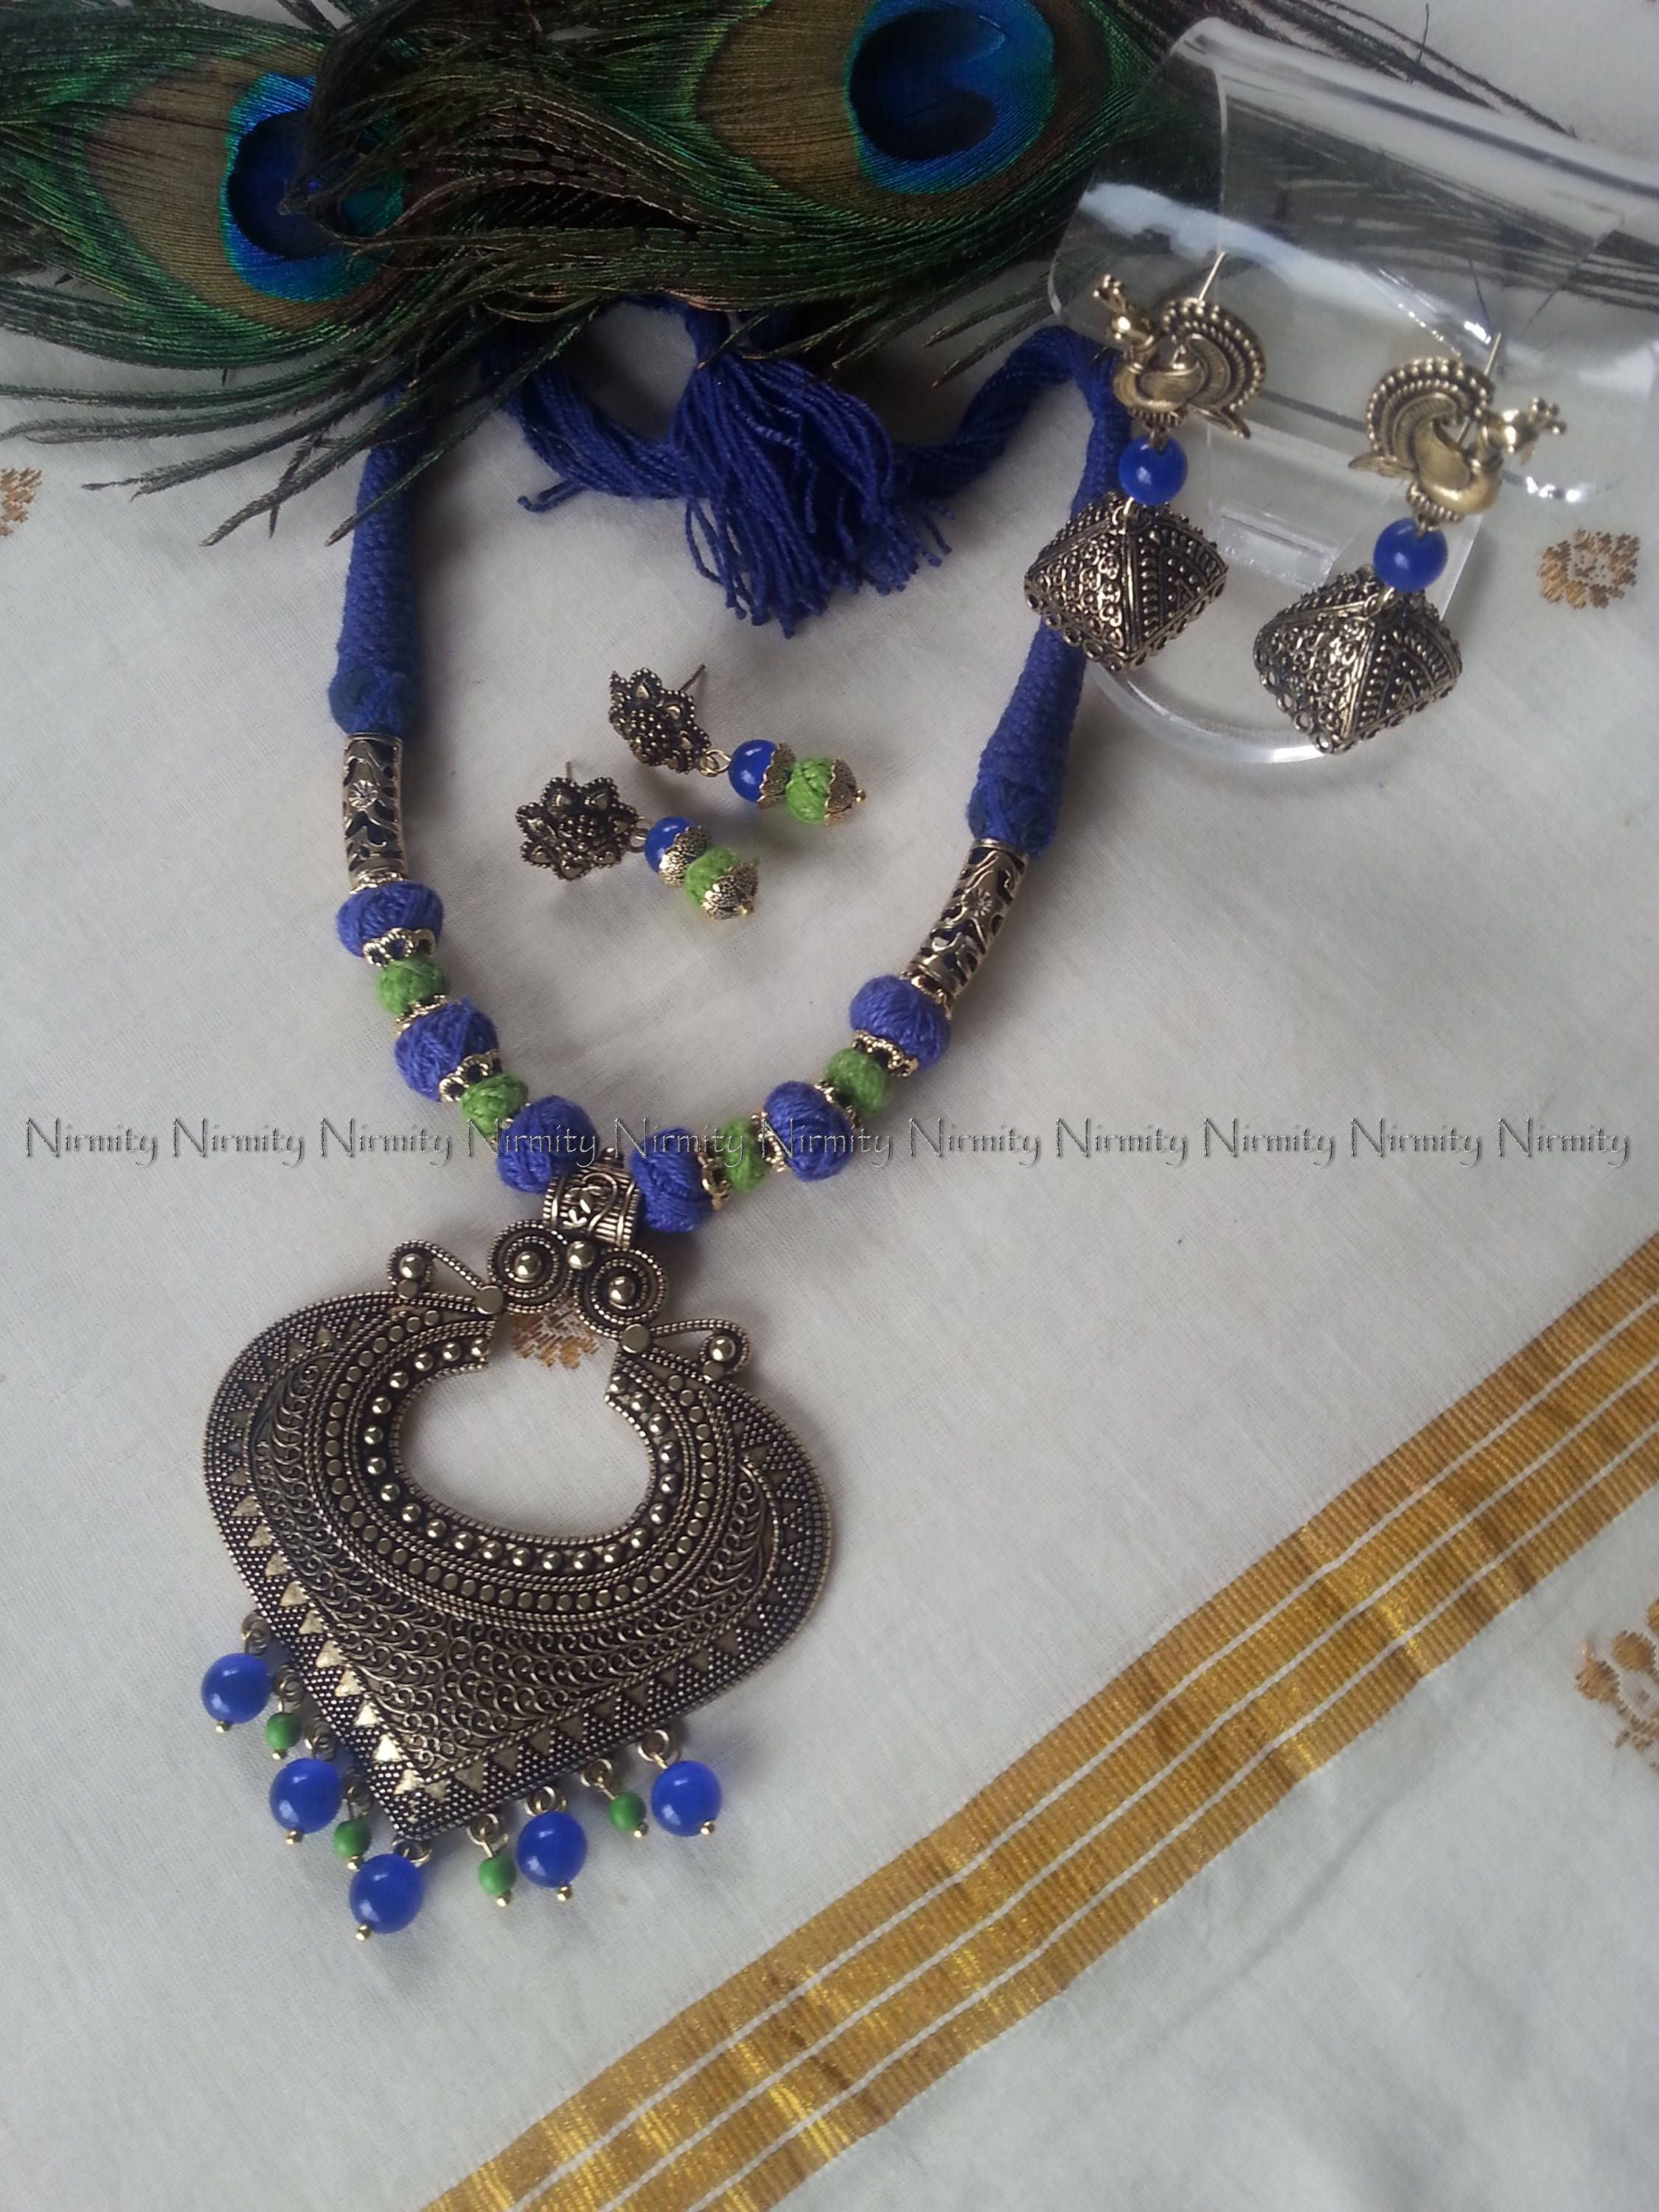 image new collection production rita berber necklace beads okrent collections